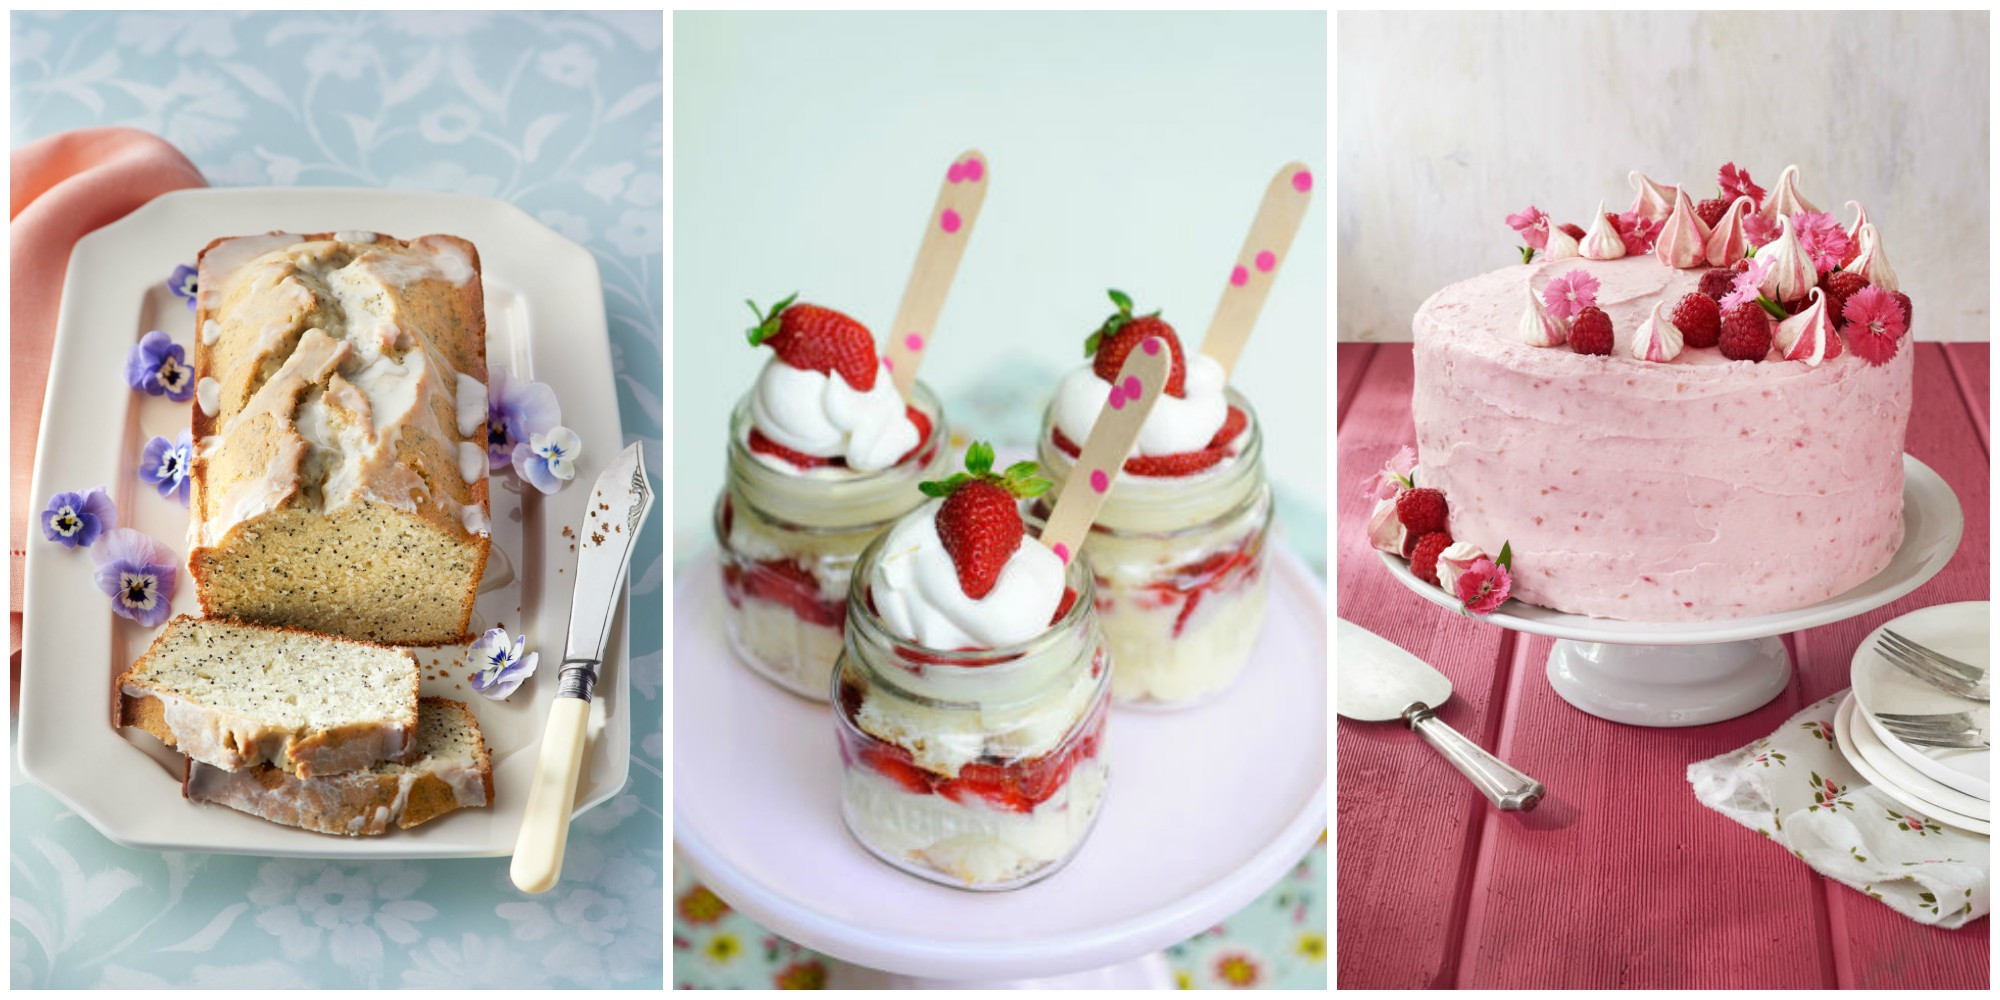 Desserts For Mother'S Day  12 Best Mother s Day Desserts Easy Ideas for Mothers Day